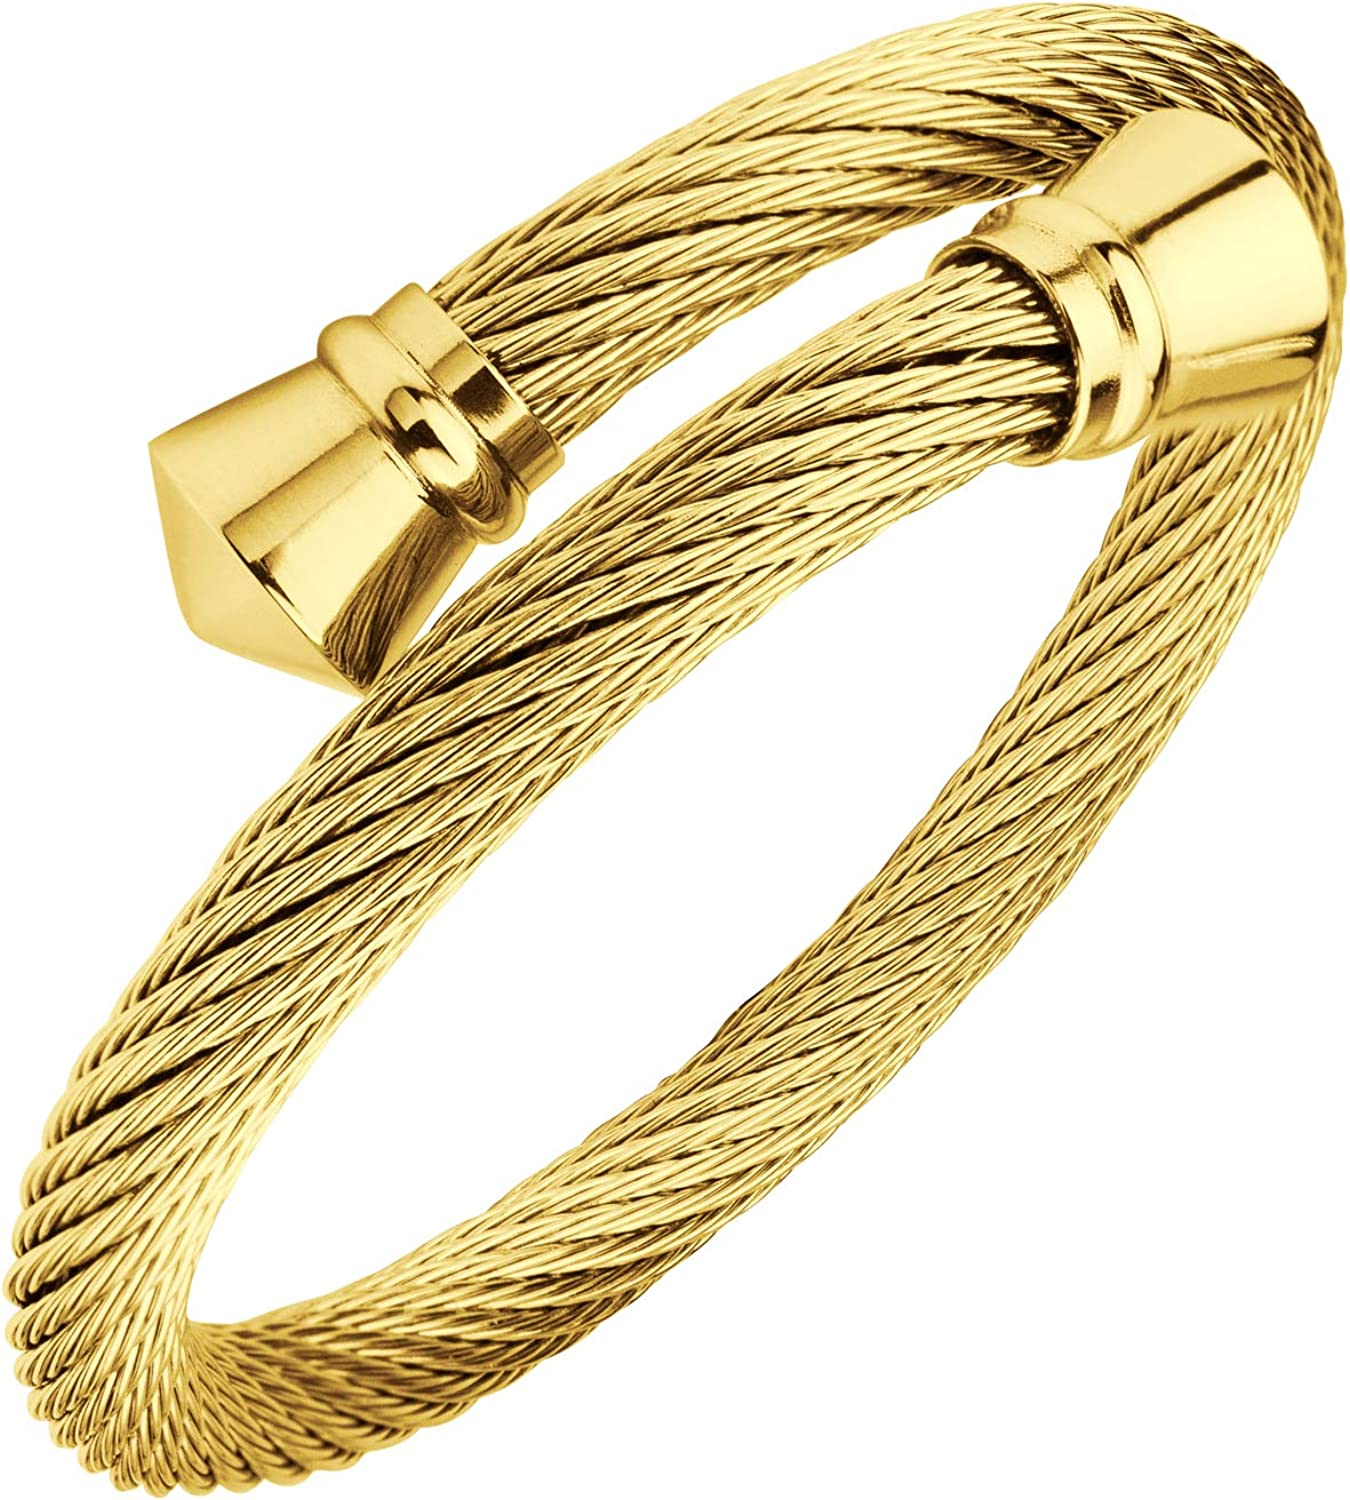 555Jewelry Classic Vintage Stainless Steel Twisted Wire Cuff Bracelet Bangle